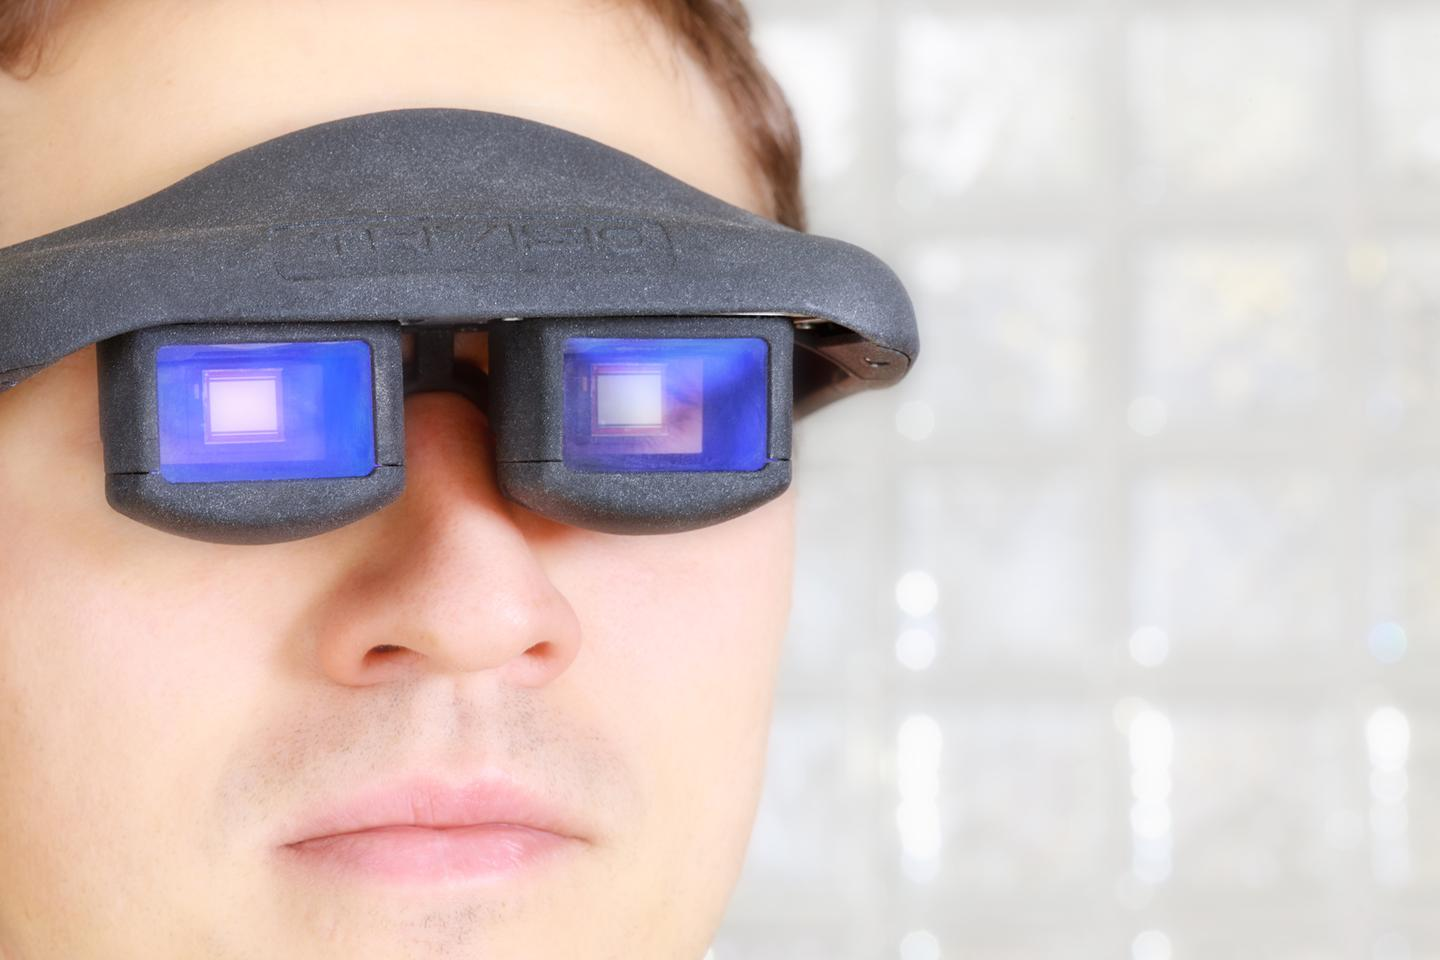 Fraunhofer's OLED data glasses